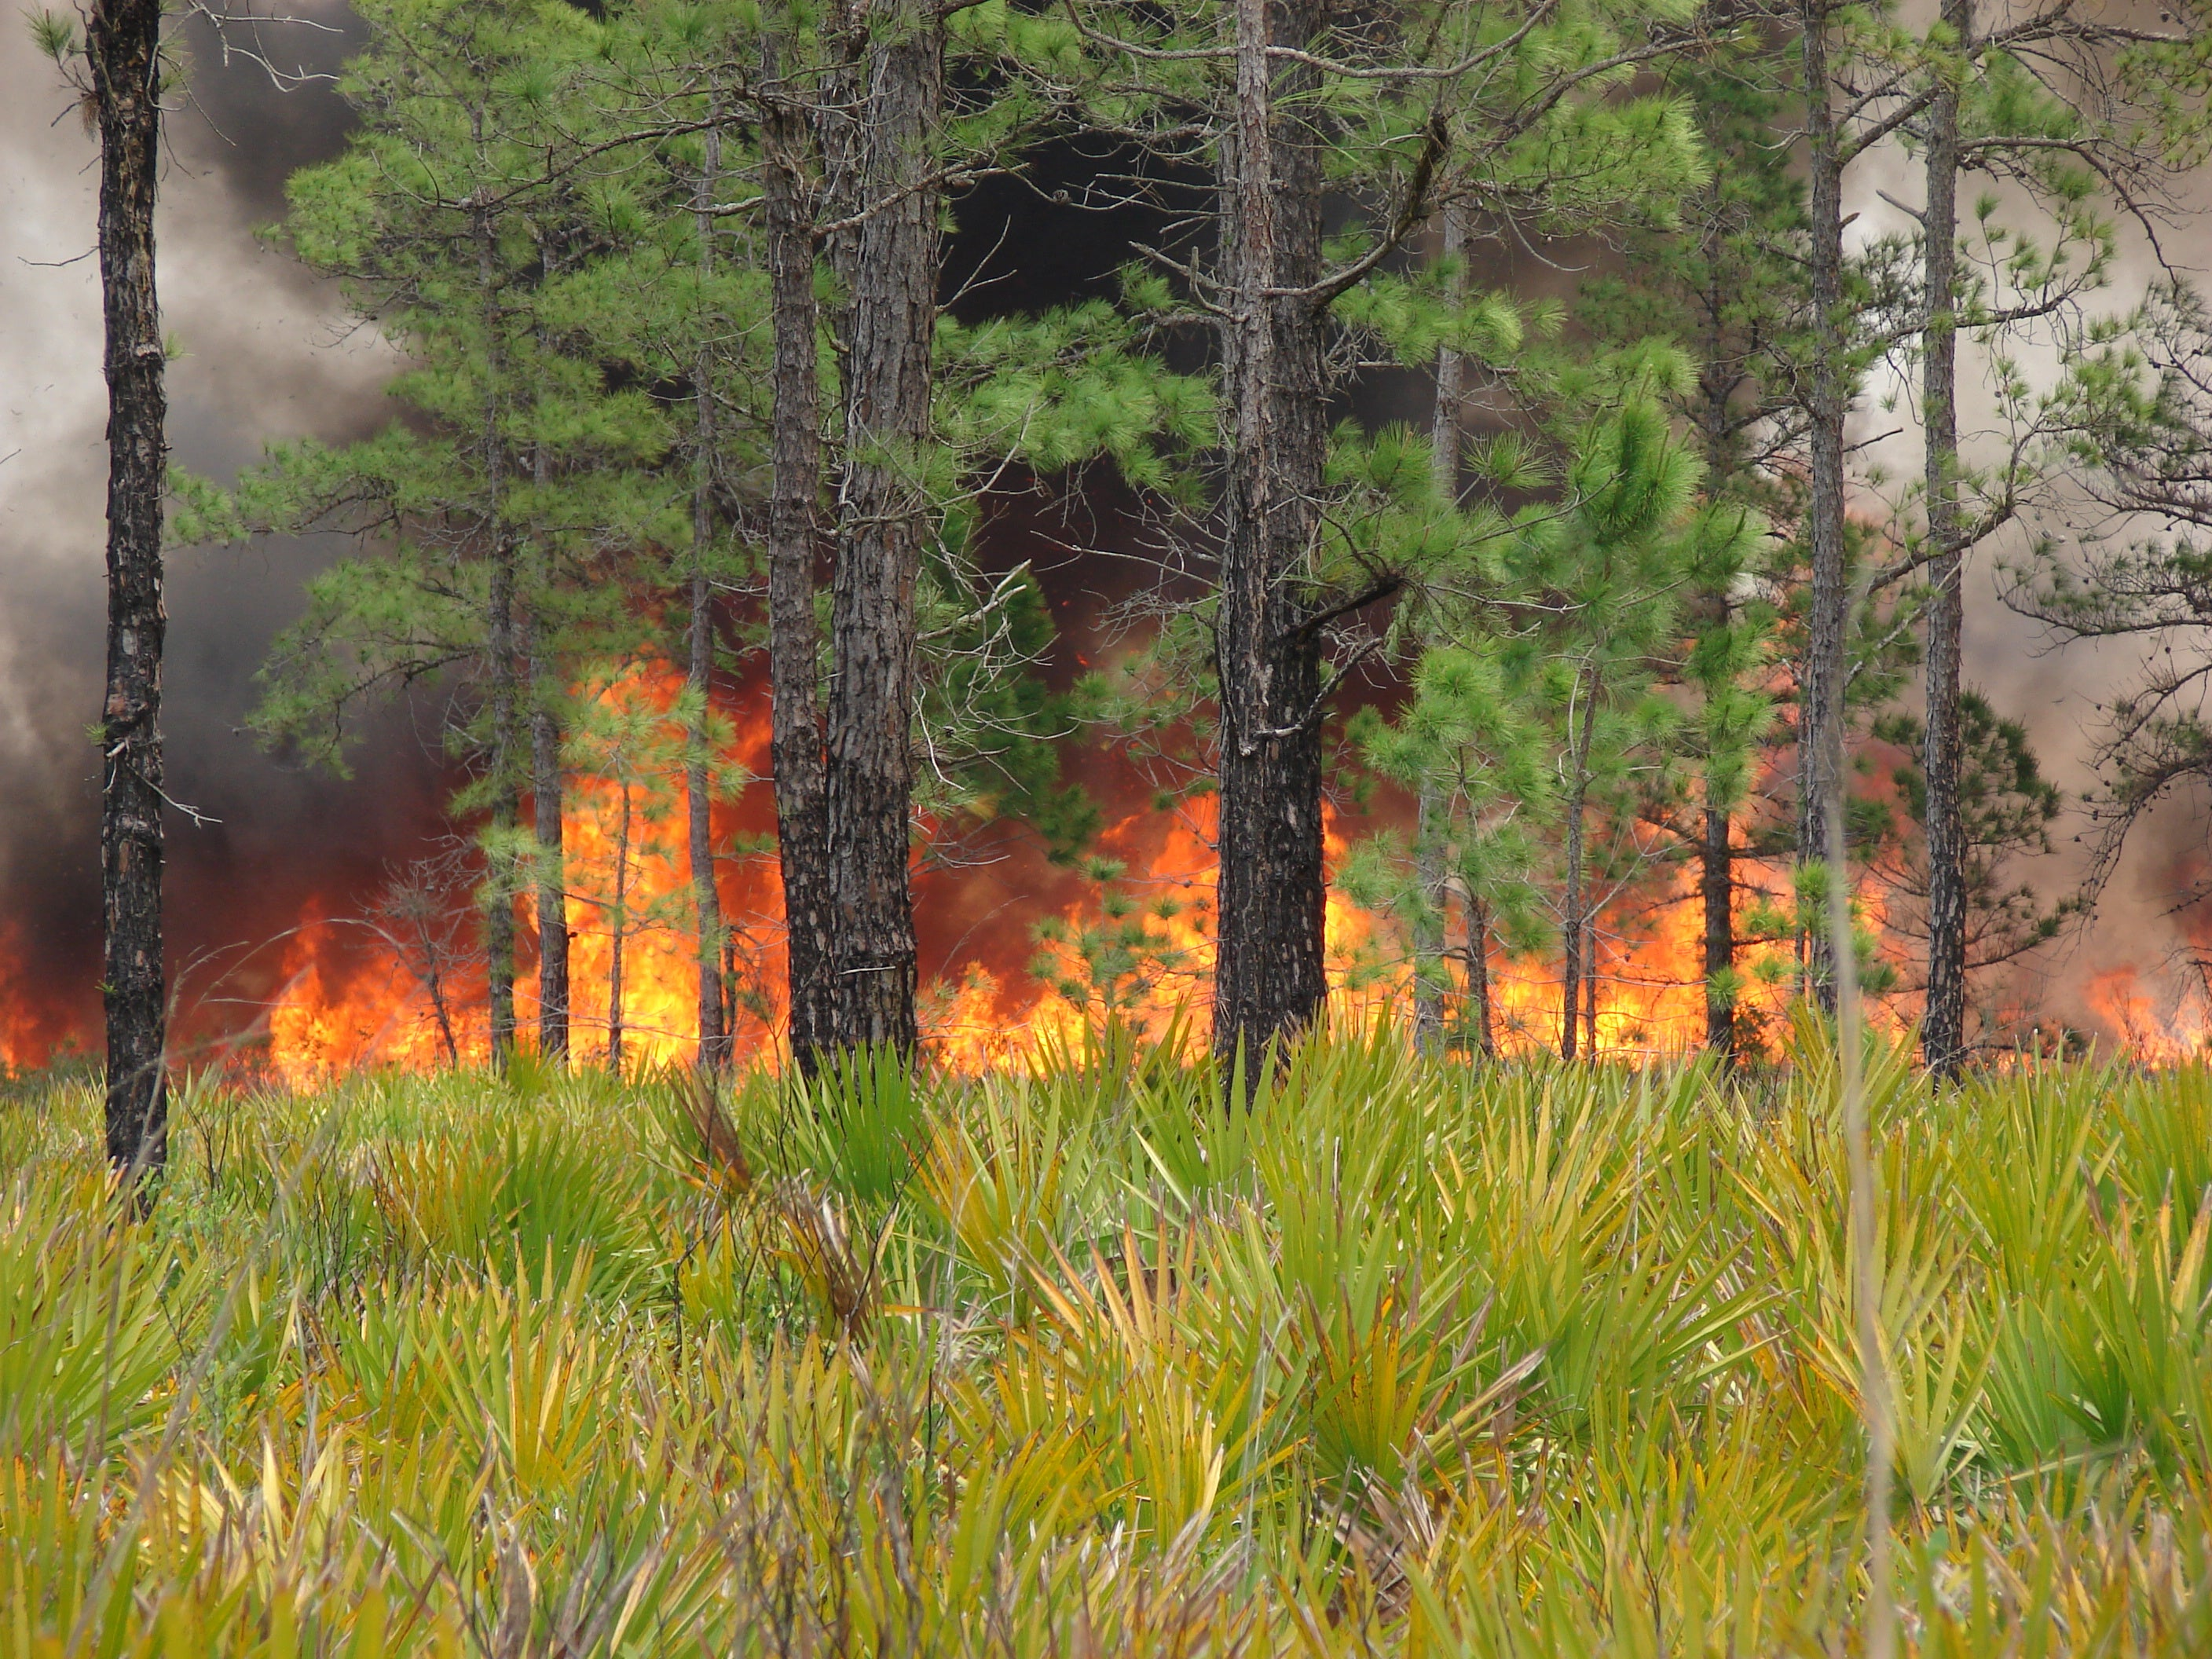 Forest fire scene: Steve Pyne has written many books about the history of fire around the world